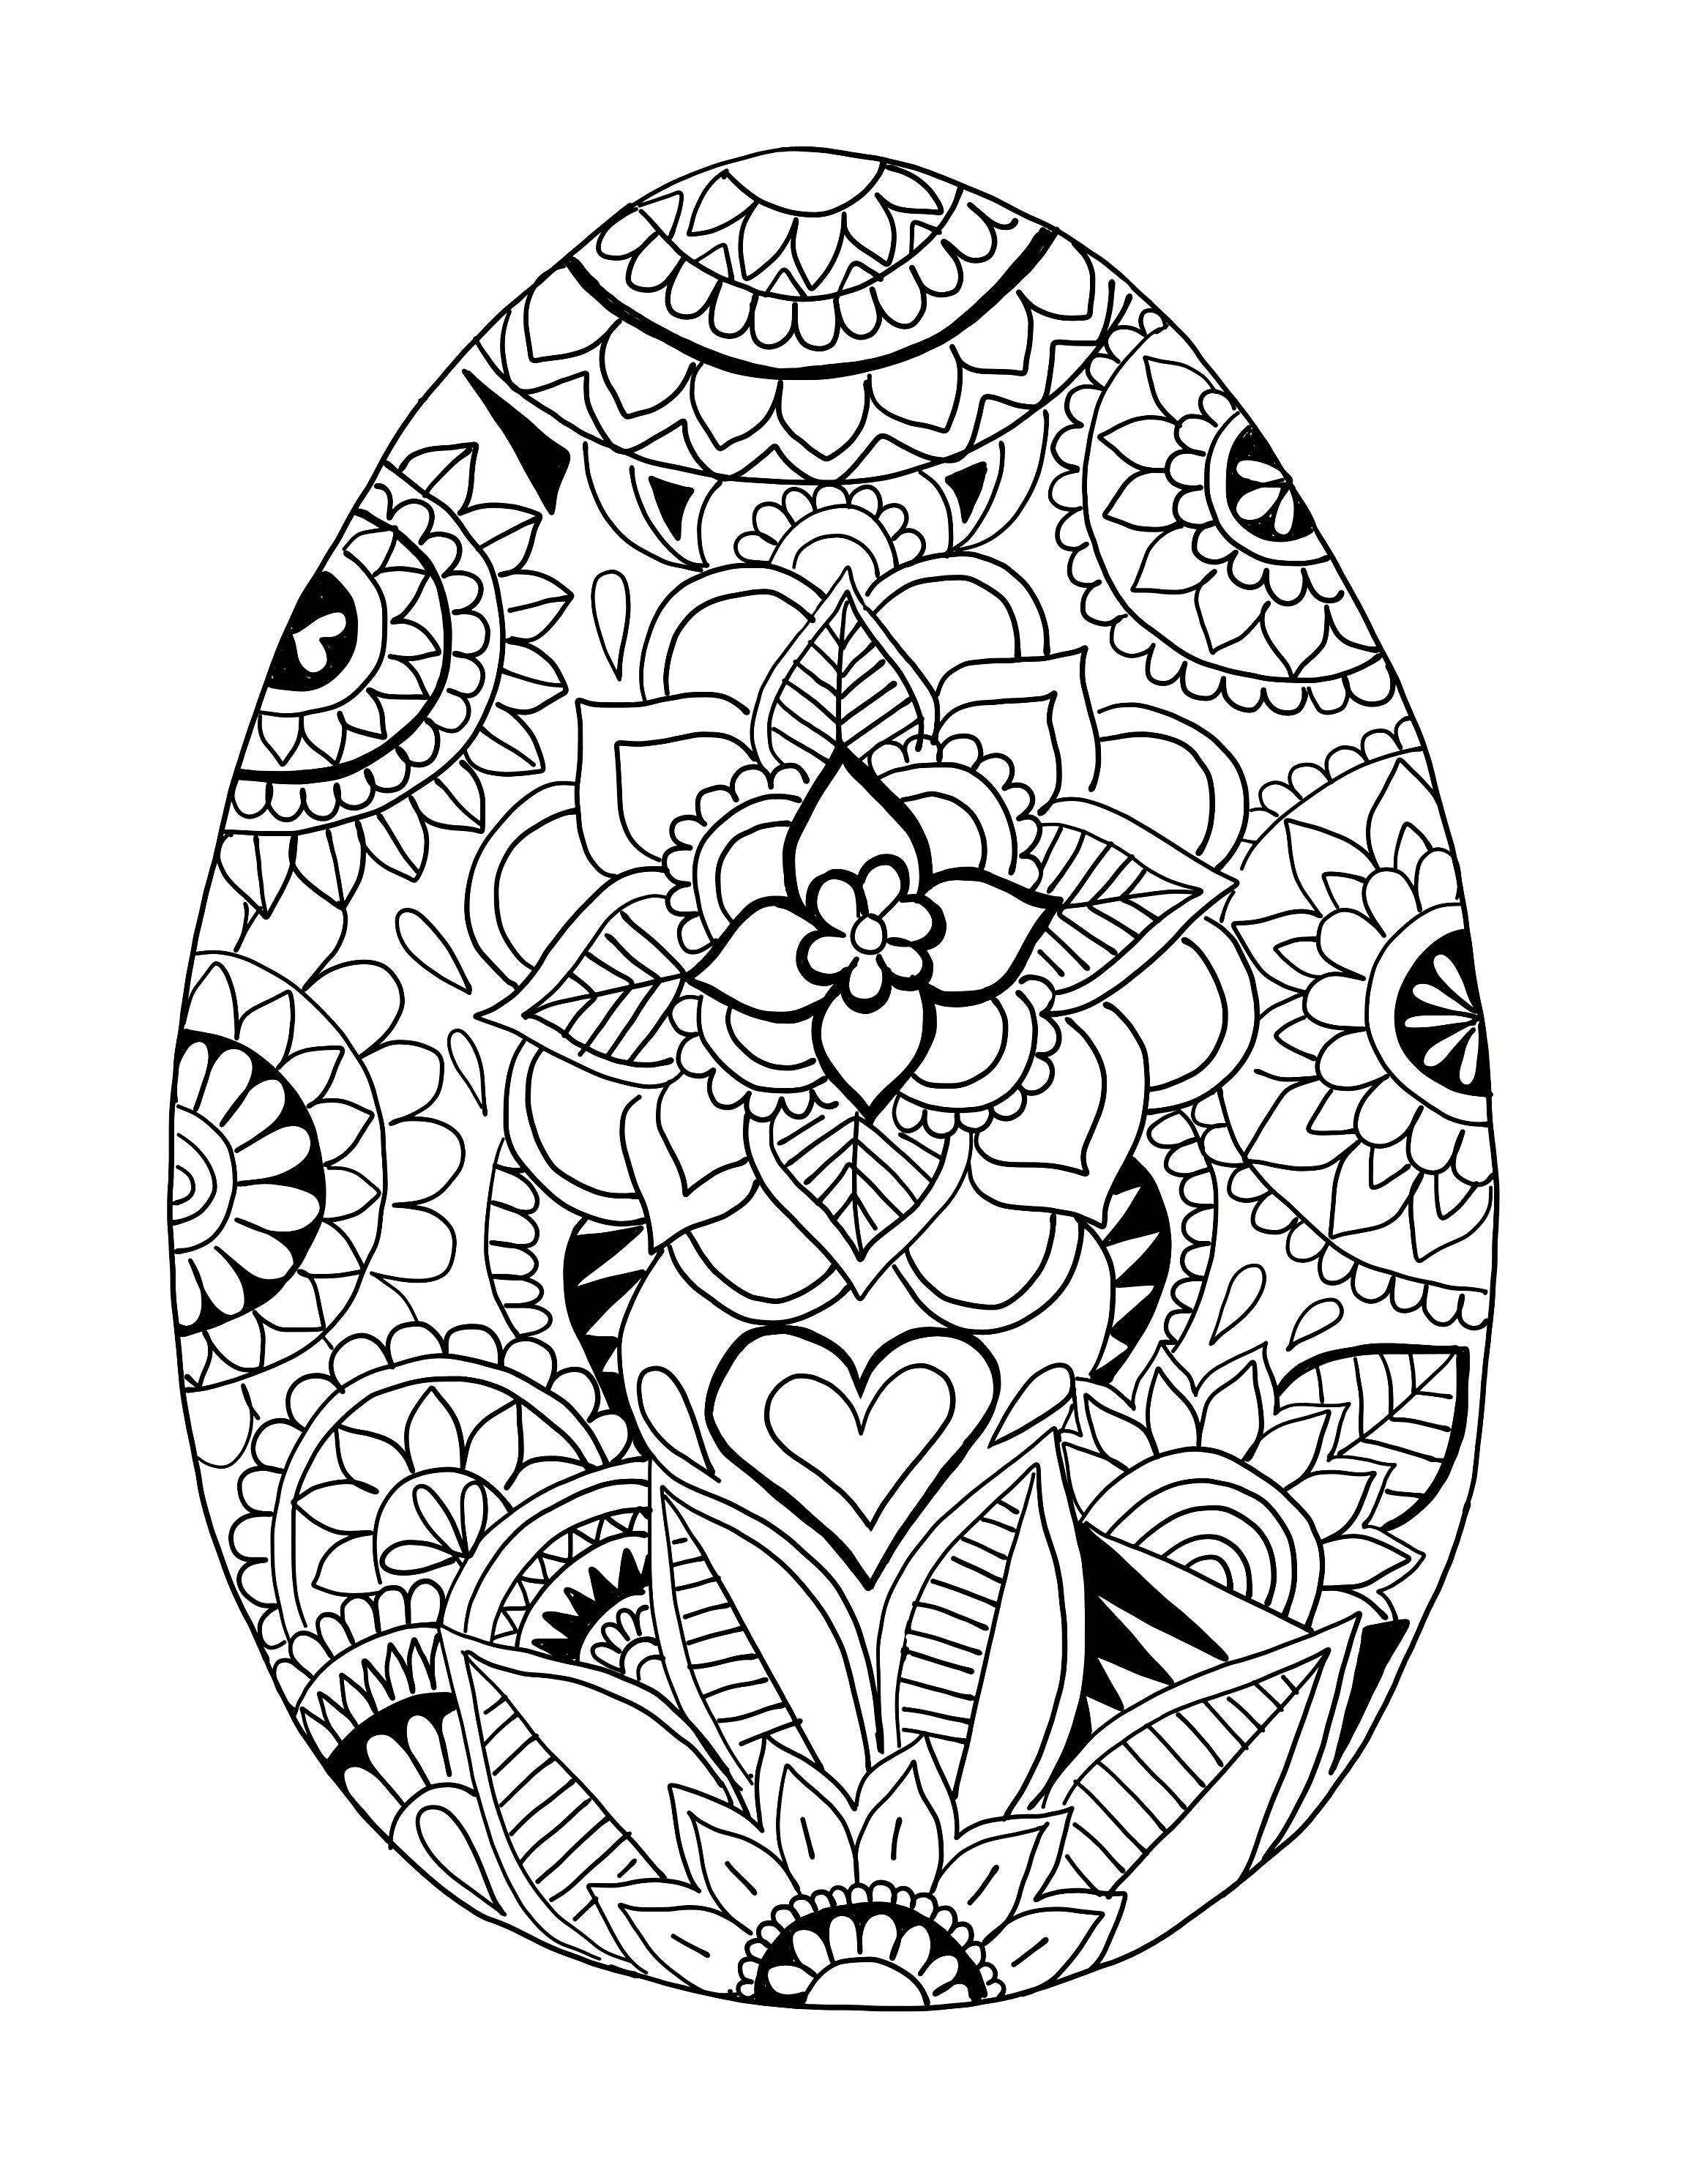 Easter Egg Coloring Page Easter Egg Printable Coloring Page Ooly With Images Easter Egg Coloring Pages Egg Coloring Page Coloring Easter Eggs